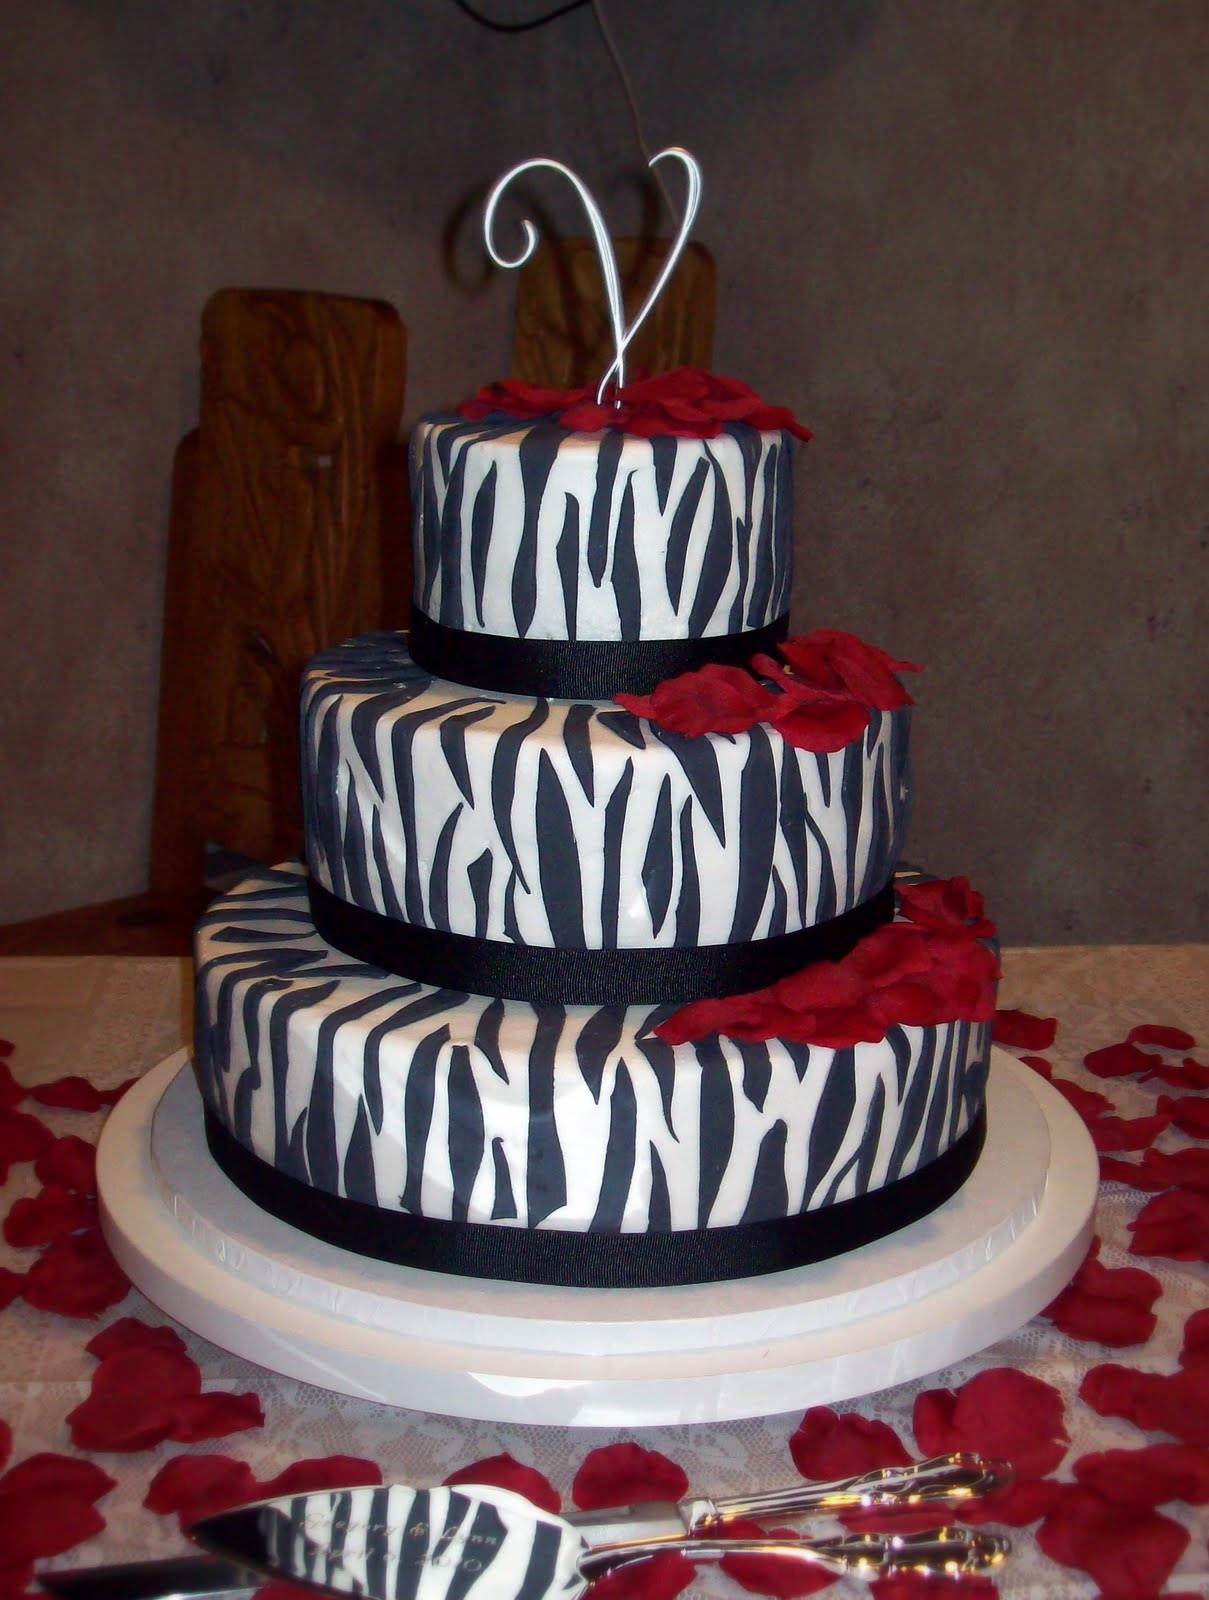 Cake With Zebra Design : cakes zebra print birthday cakes animal print cakes ...